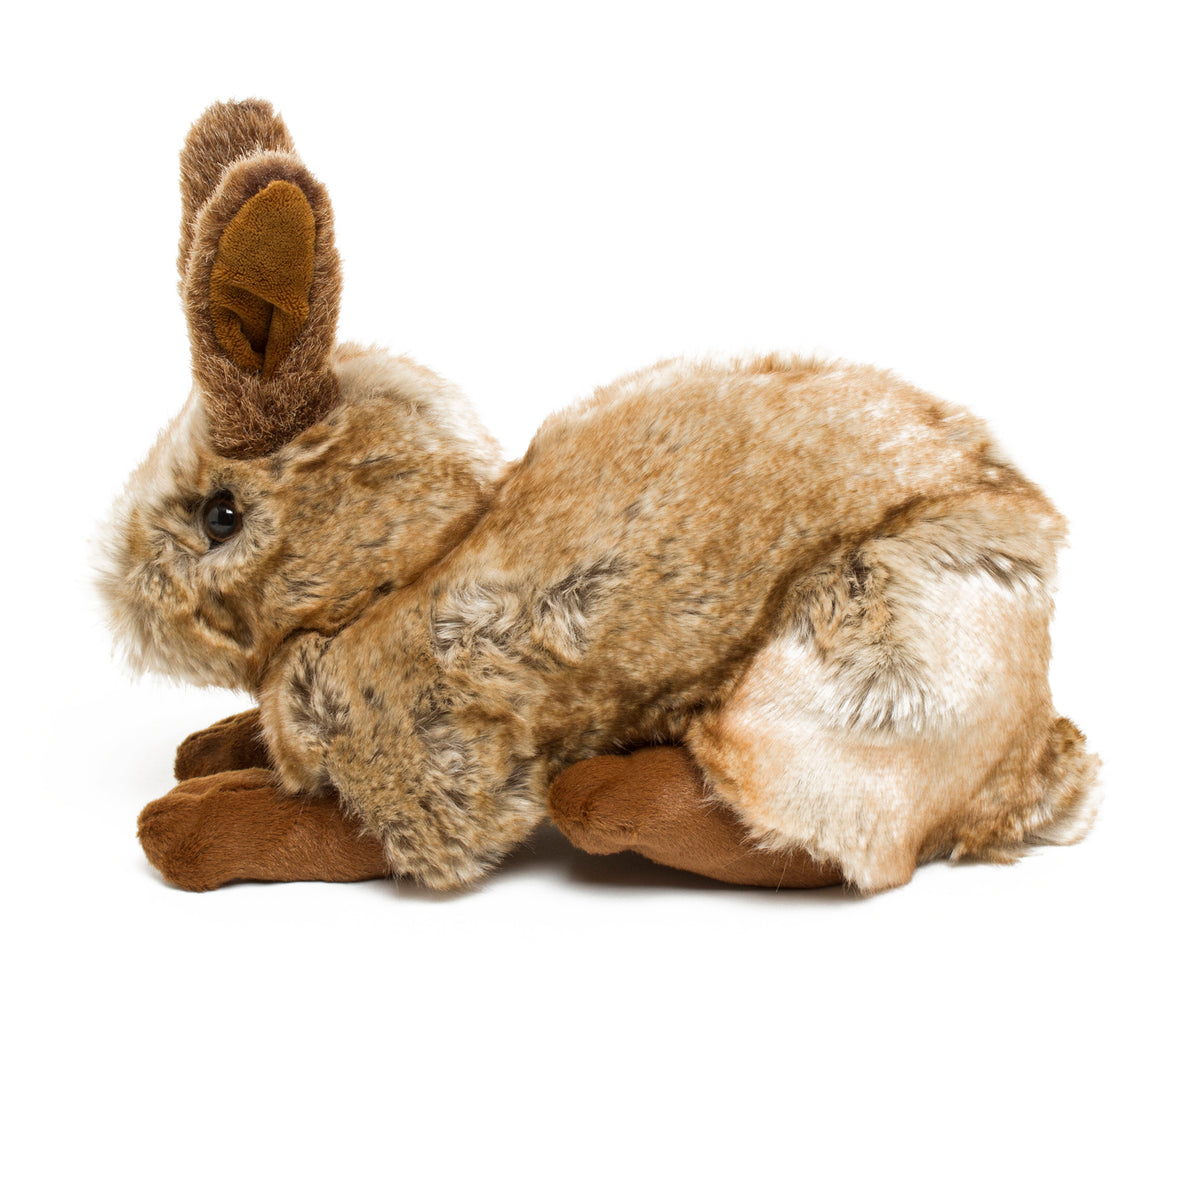 Plush Bunny Inspired by A Hare in the Forest by Hans Hoffmann- Side View  | Getty Store